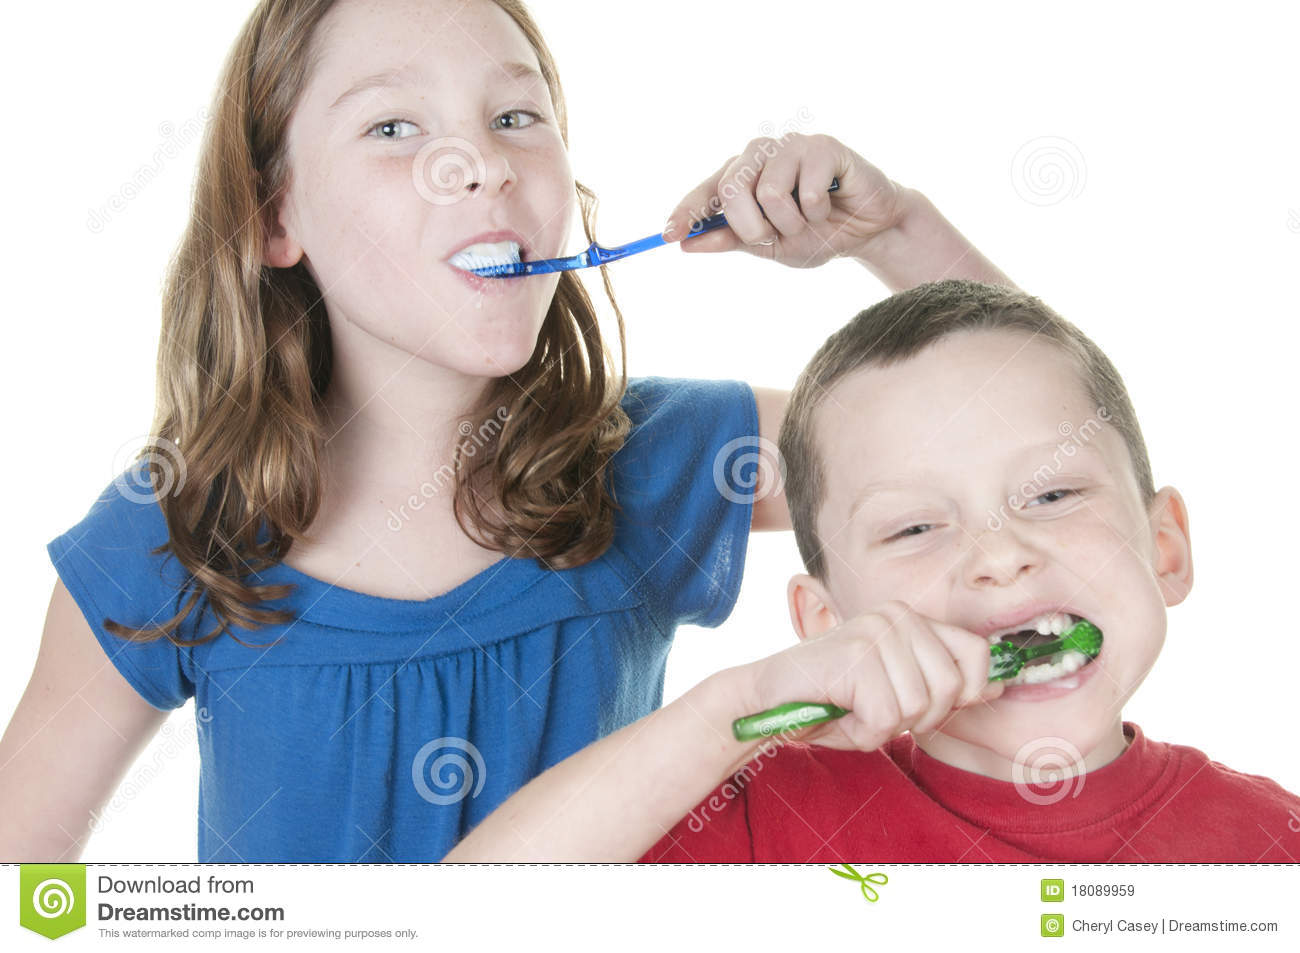 sociological essay on brushing teeth Date 1 locate toothpaste 2 locate toothbrush 3 unscrew toothpaste cap 4 put small amount of toothpaste on toothbrush 5 turn water on.